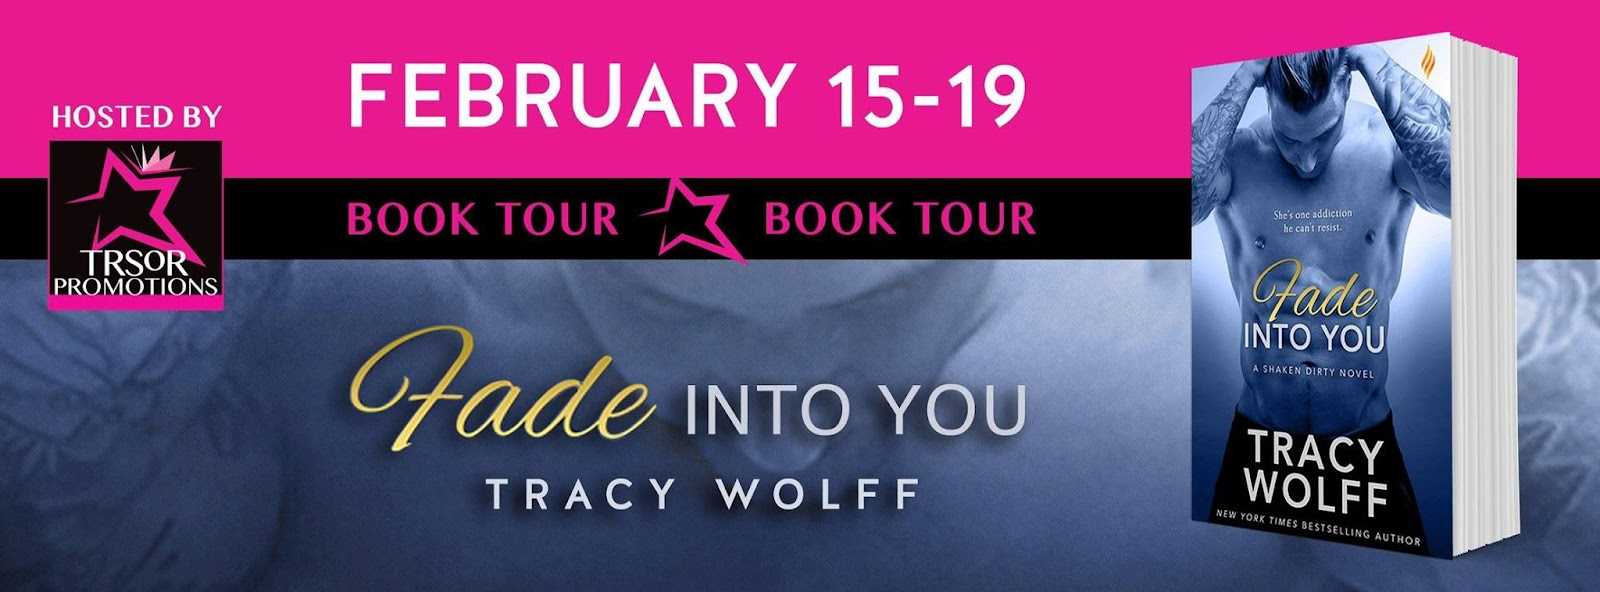 FADE INTO YOU BOOK TOUR.jpg